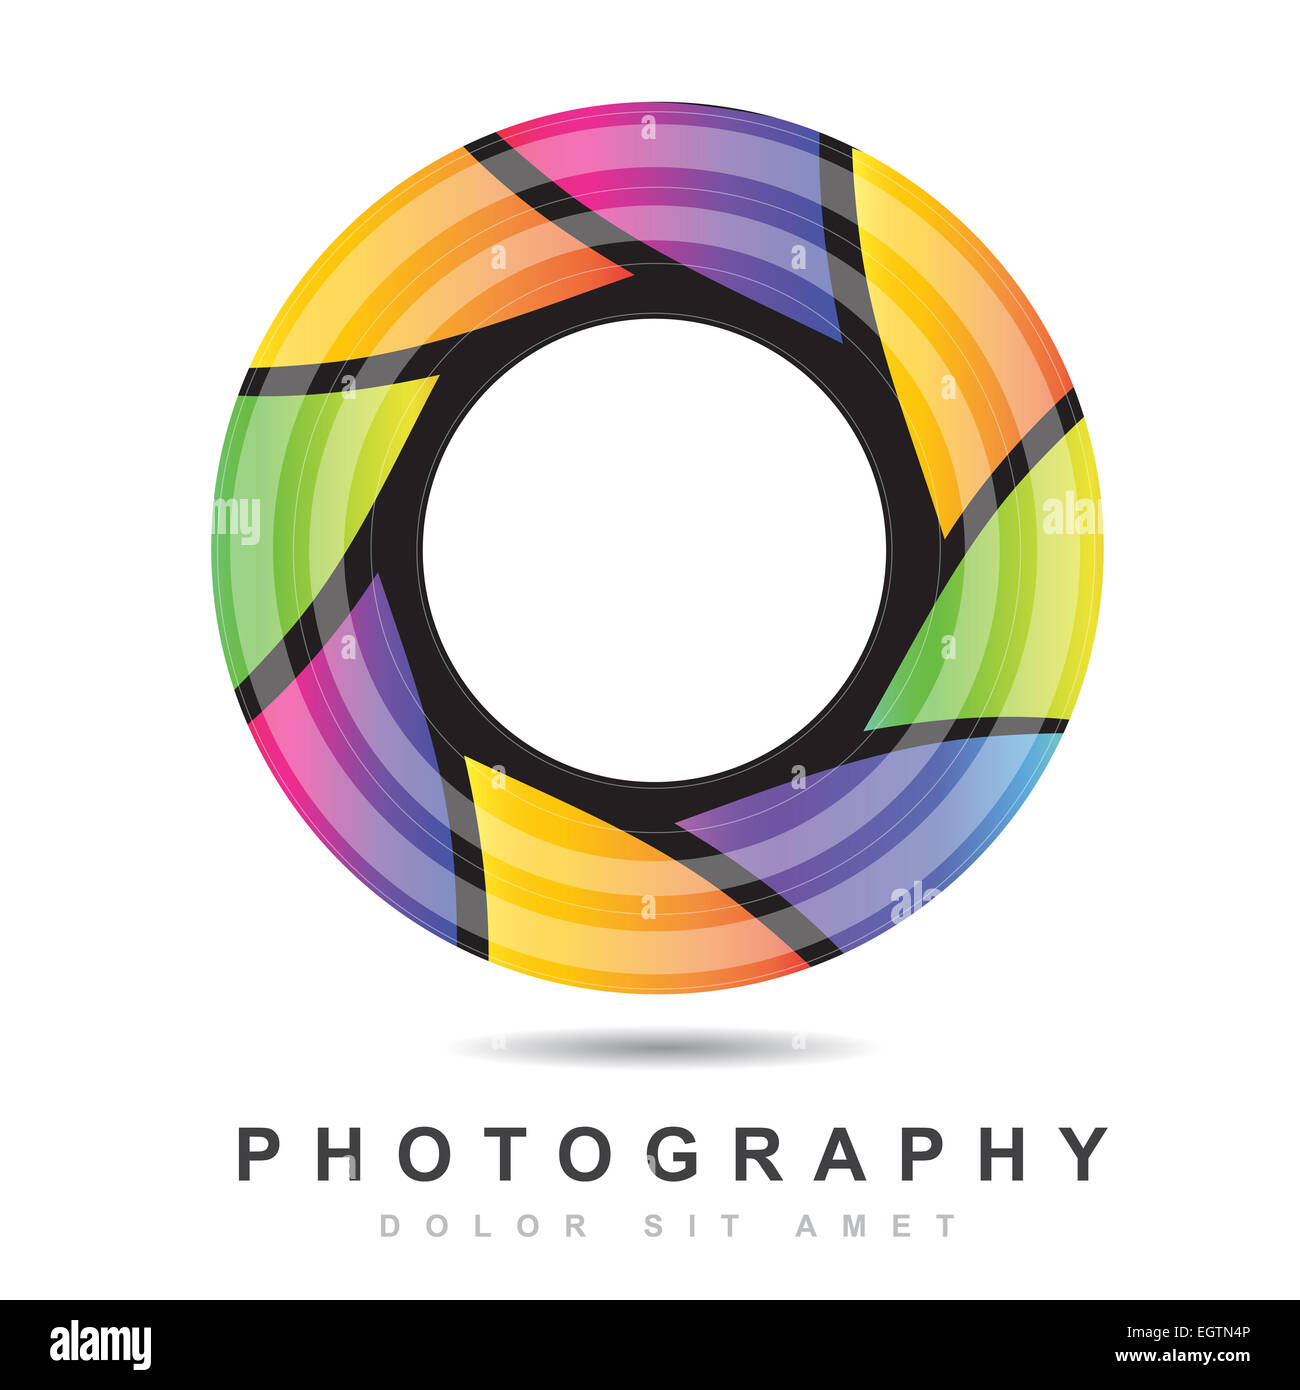 Colored logo vector design of a photography camera diaphragm - Stock Image